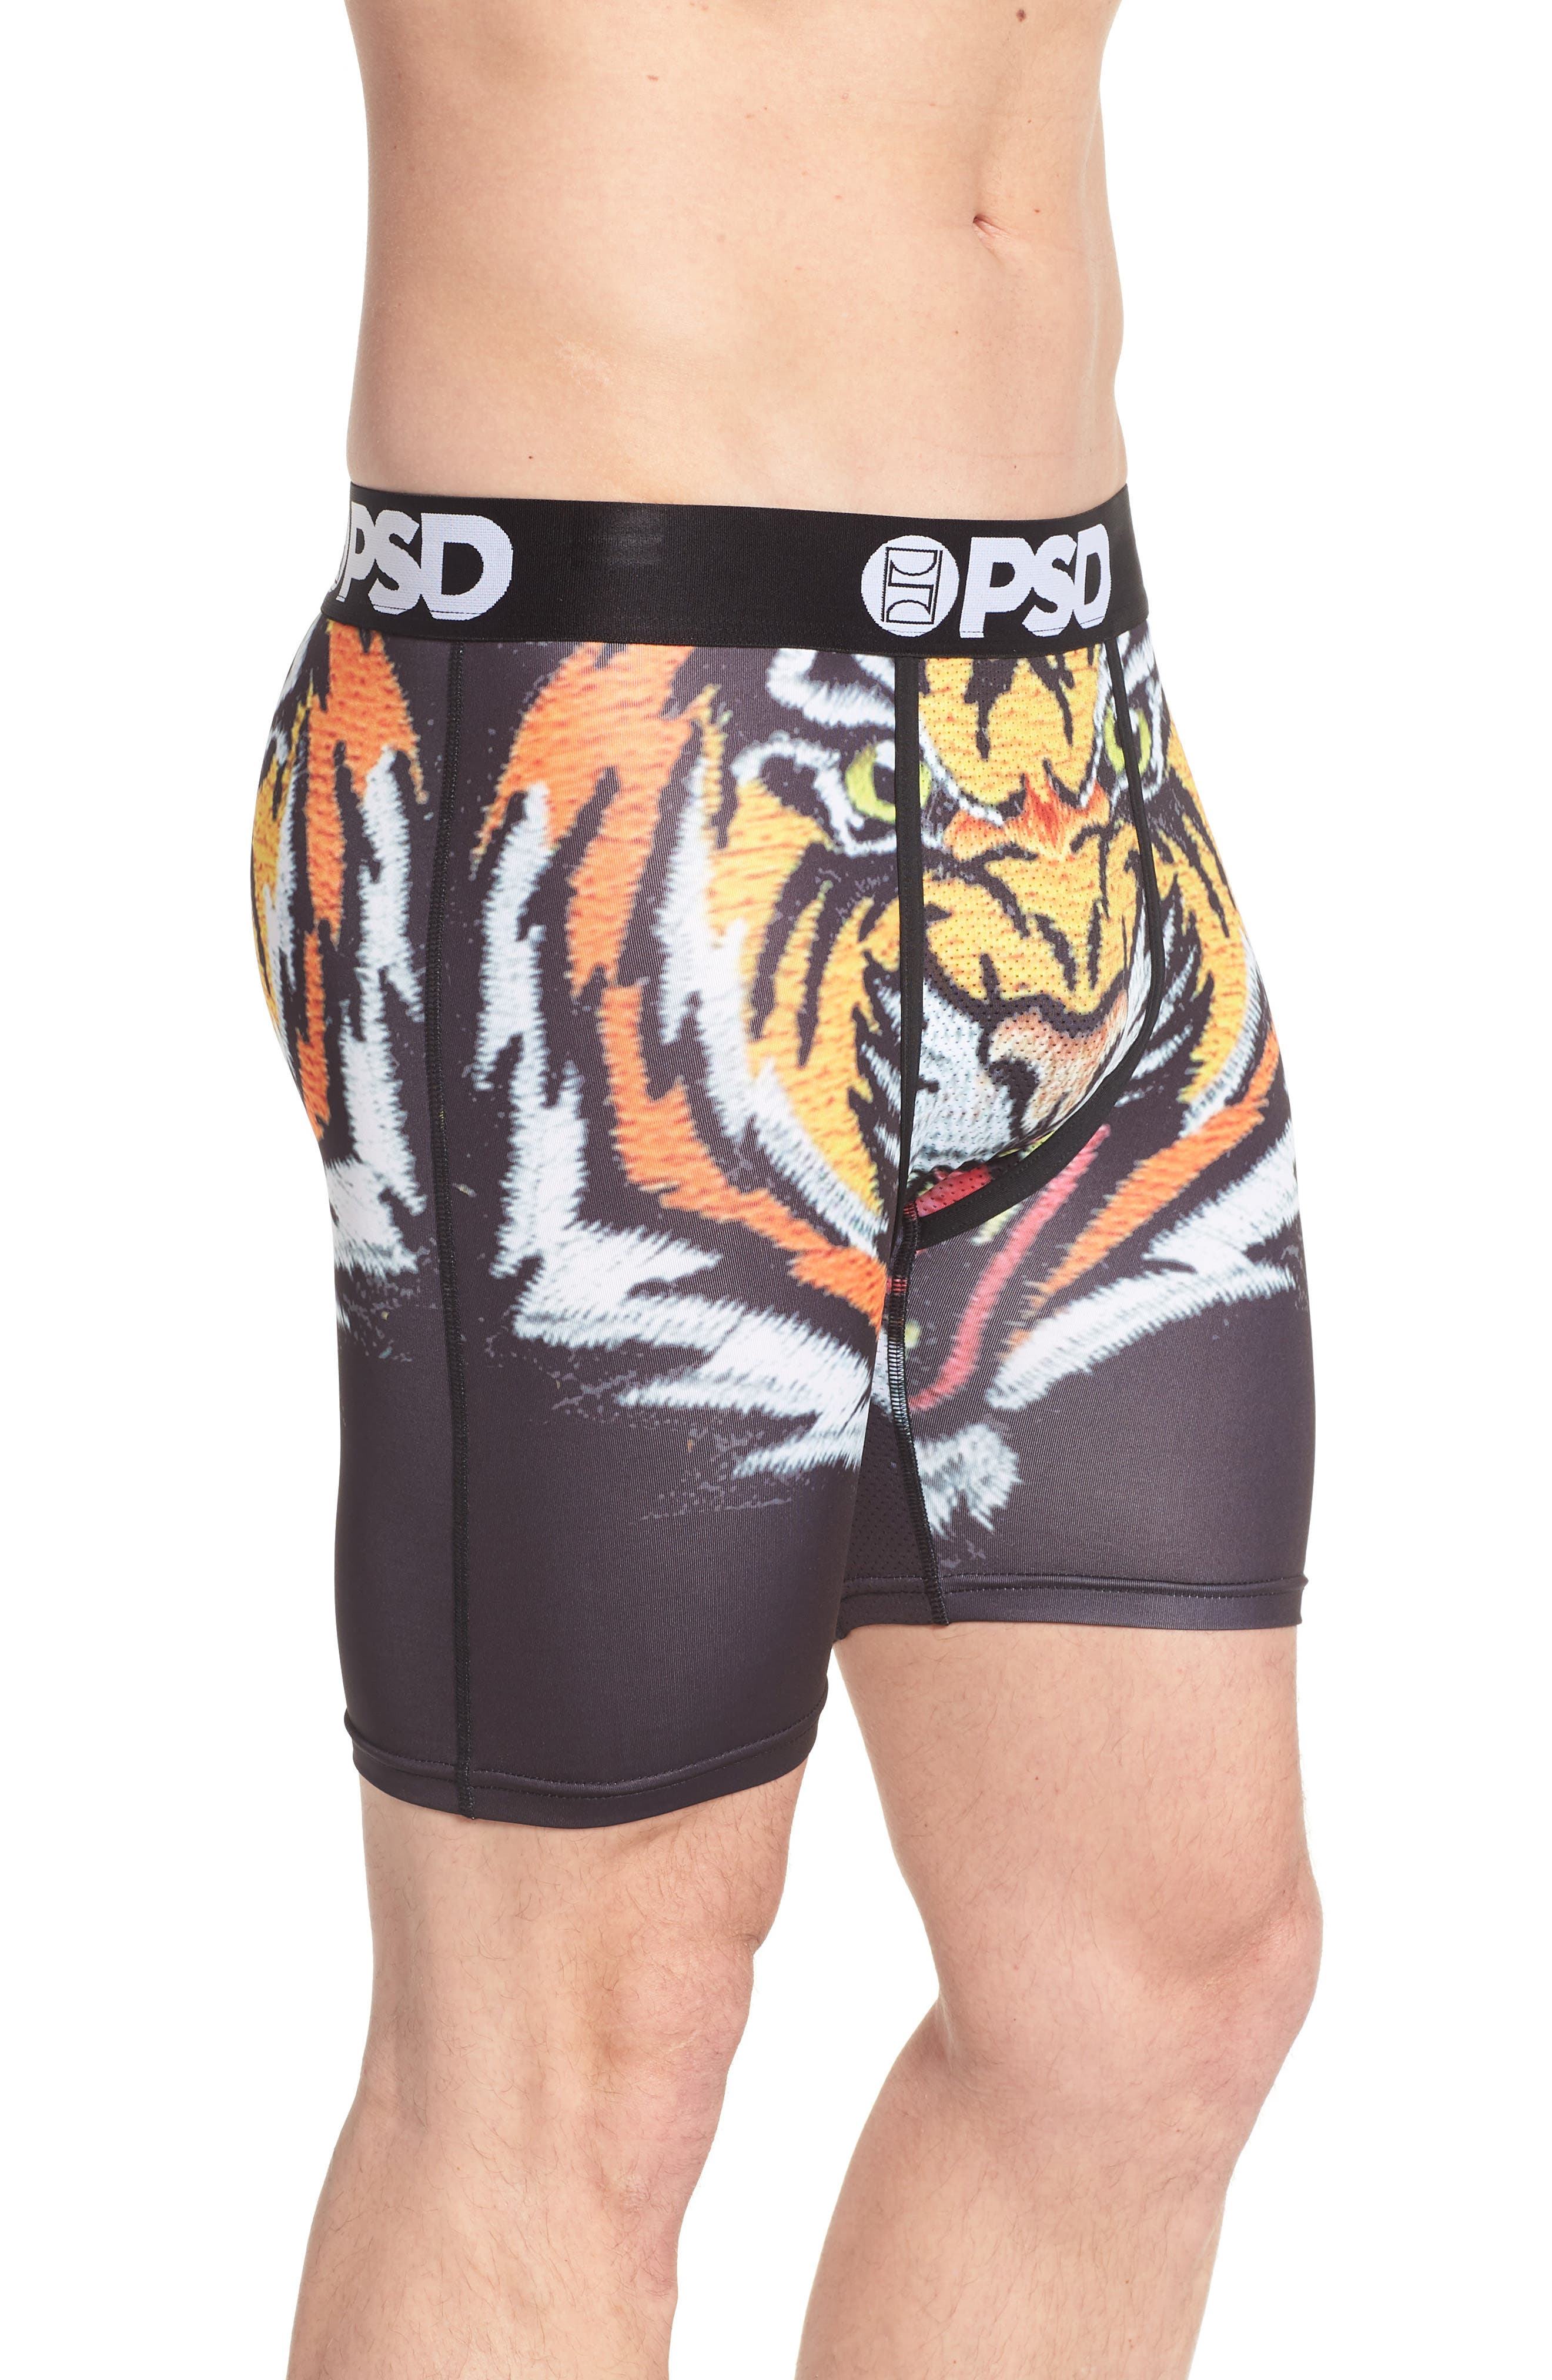 Souvenir Tiger Wings Boxer Briefs,                             Alternate thumbnail 3, color,                             Black